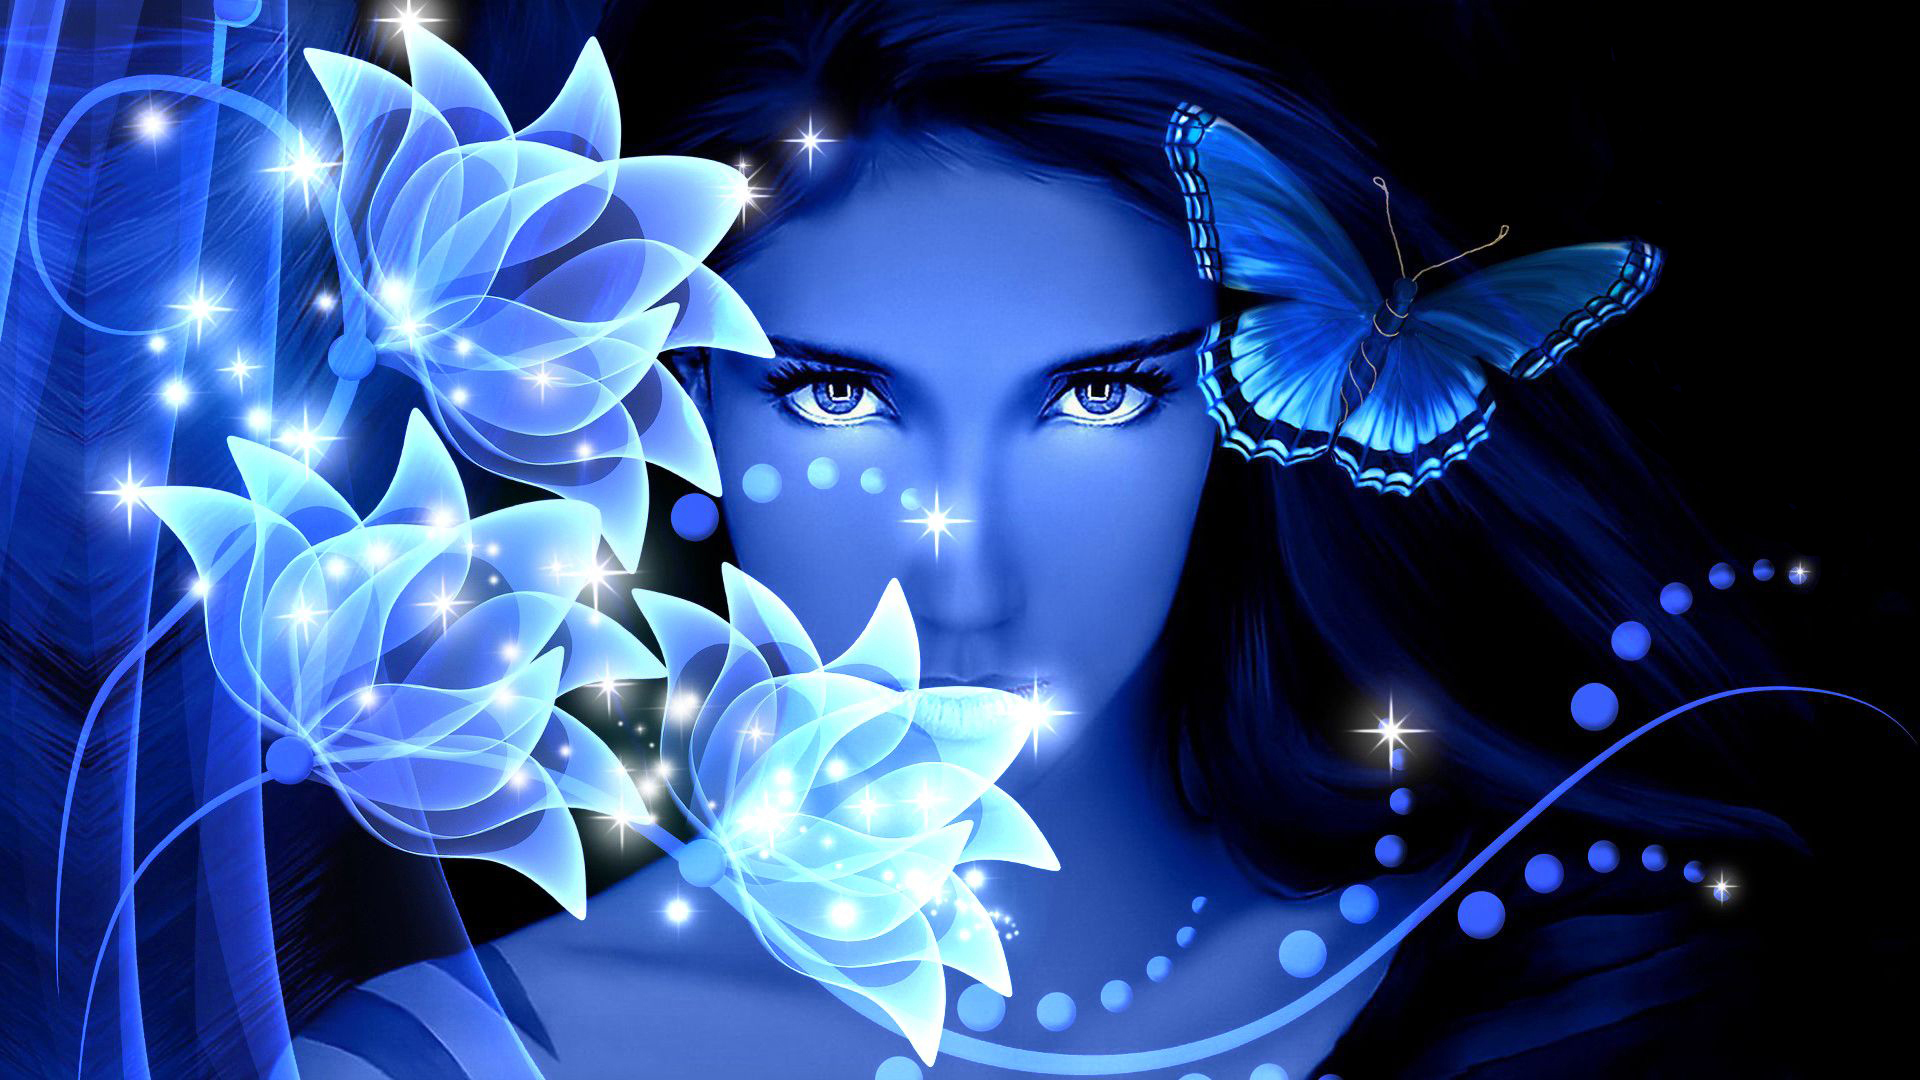 blue-butterfly-on-white-stones-desktop-background-wallpapers-hd